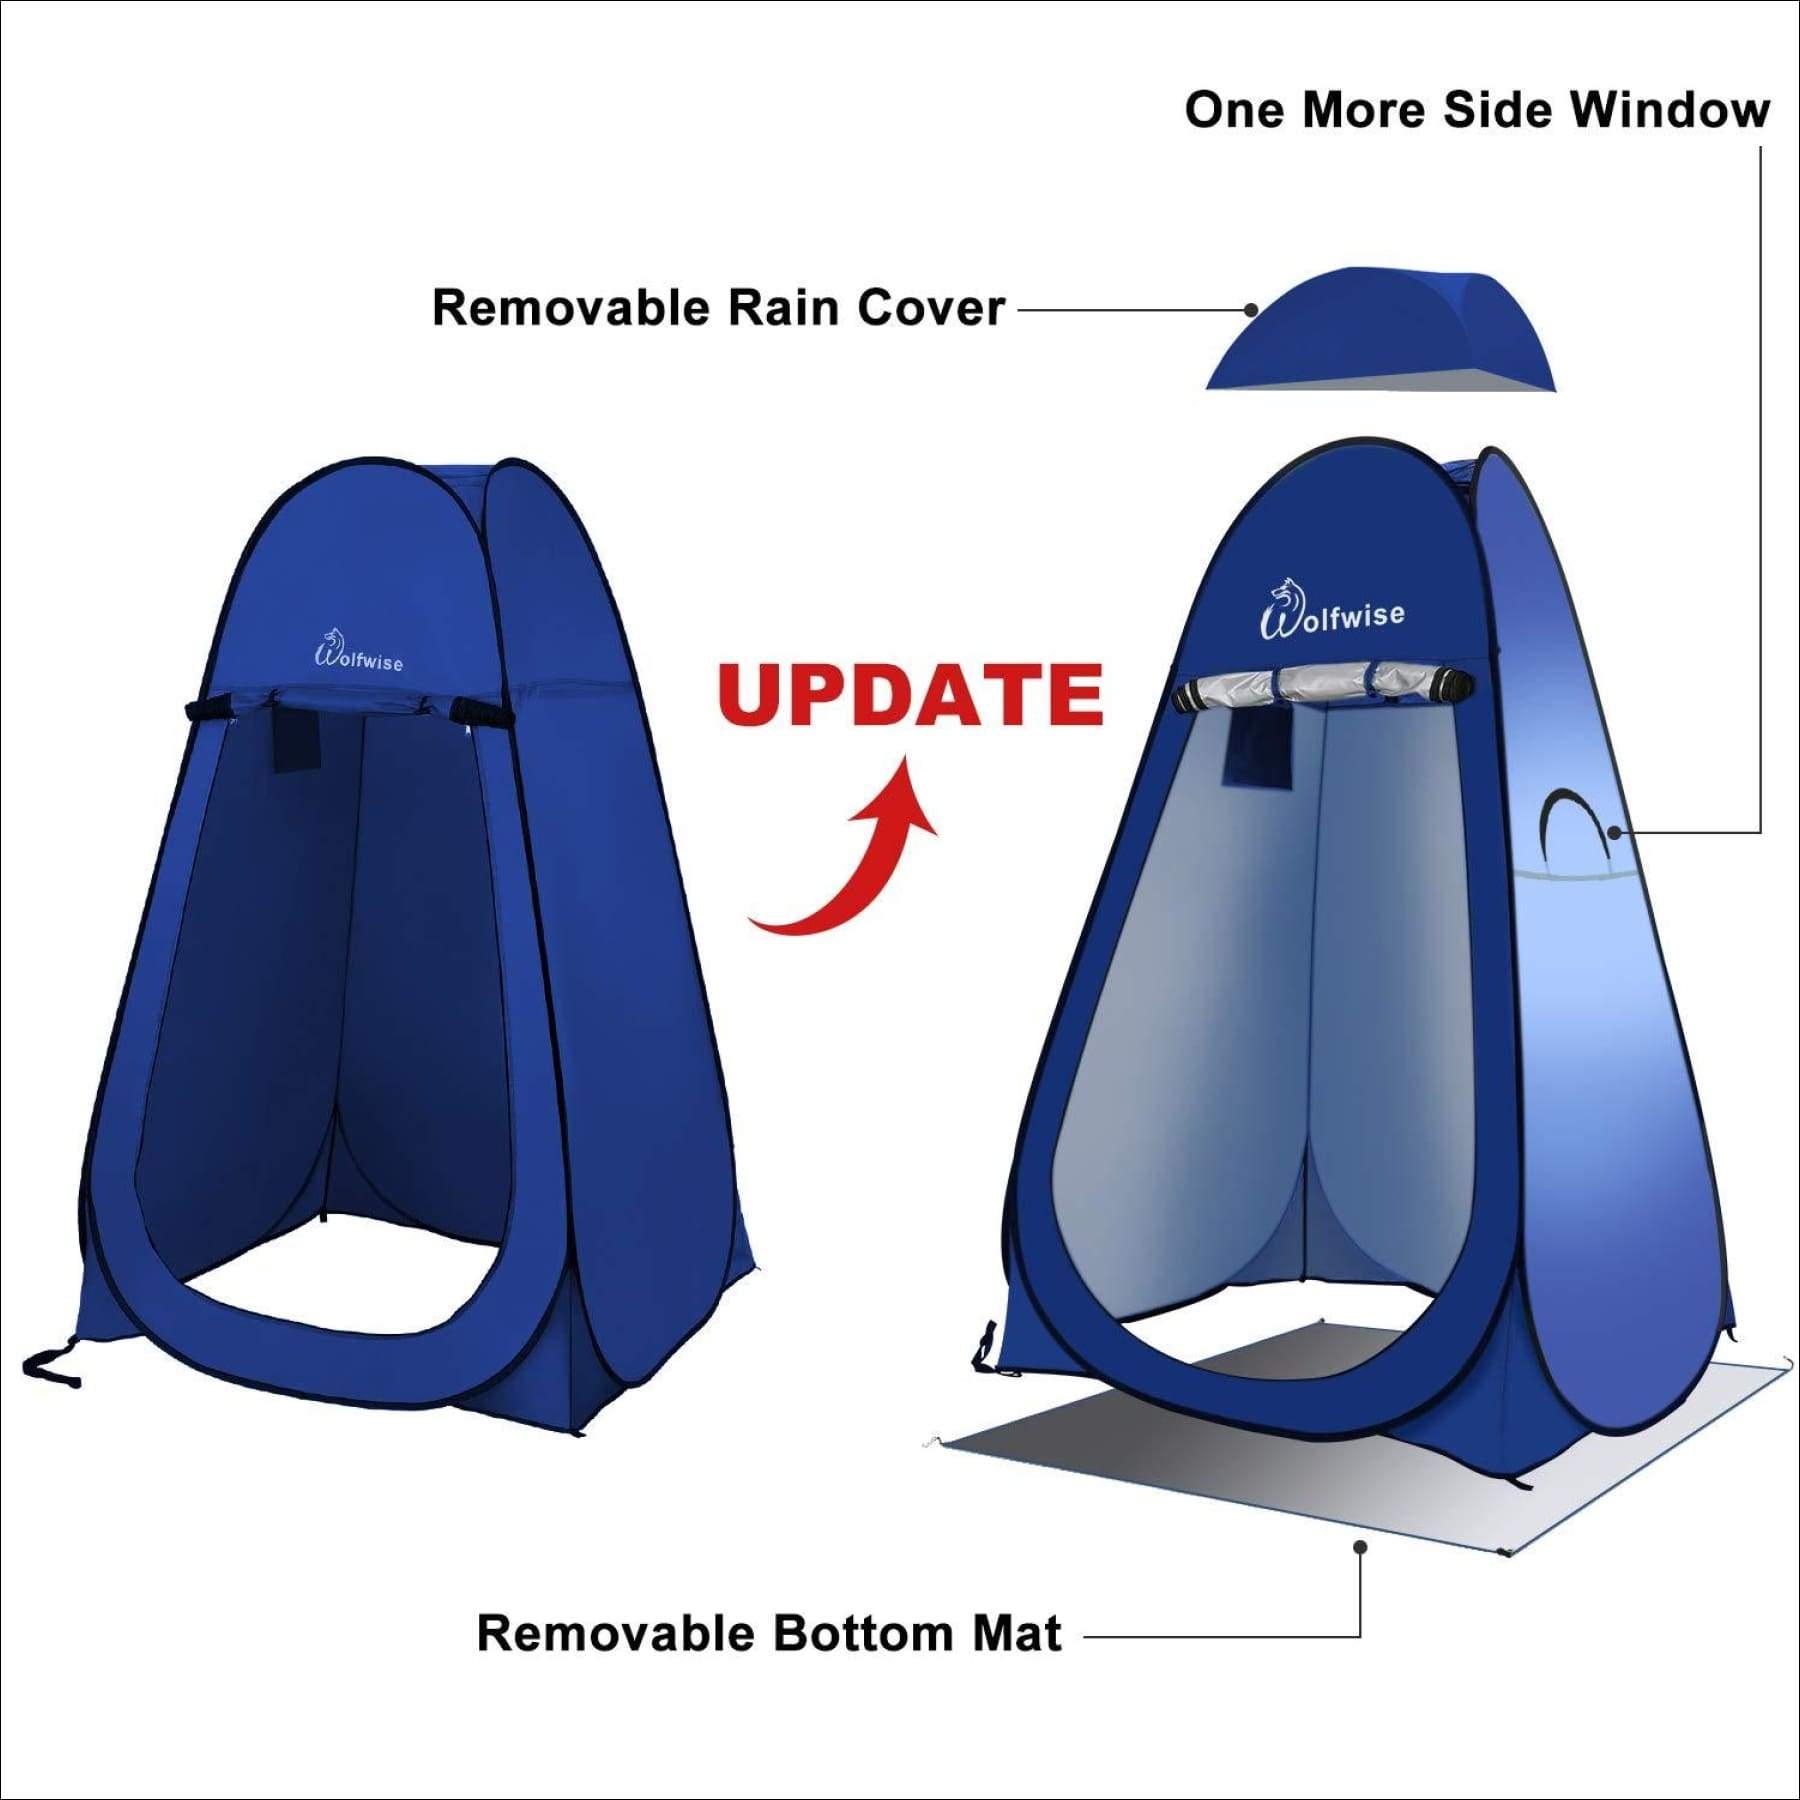 Portable with Carrying Bag WolfWise Camping Toilet Tent Pop Up Shower Privacy Tent for Outdoor Changing Dressing Fishing Bathing Storage Room Tents